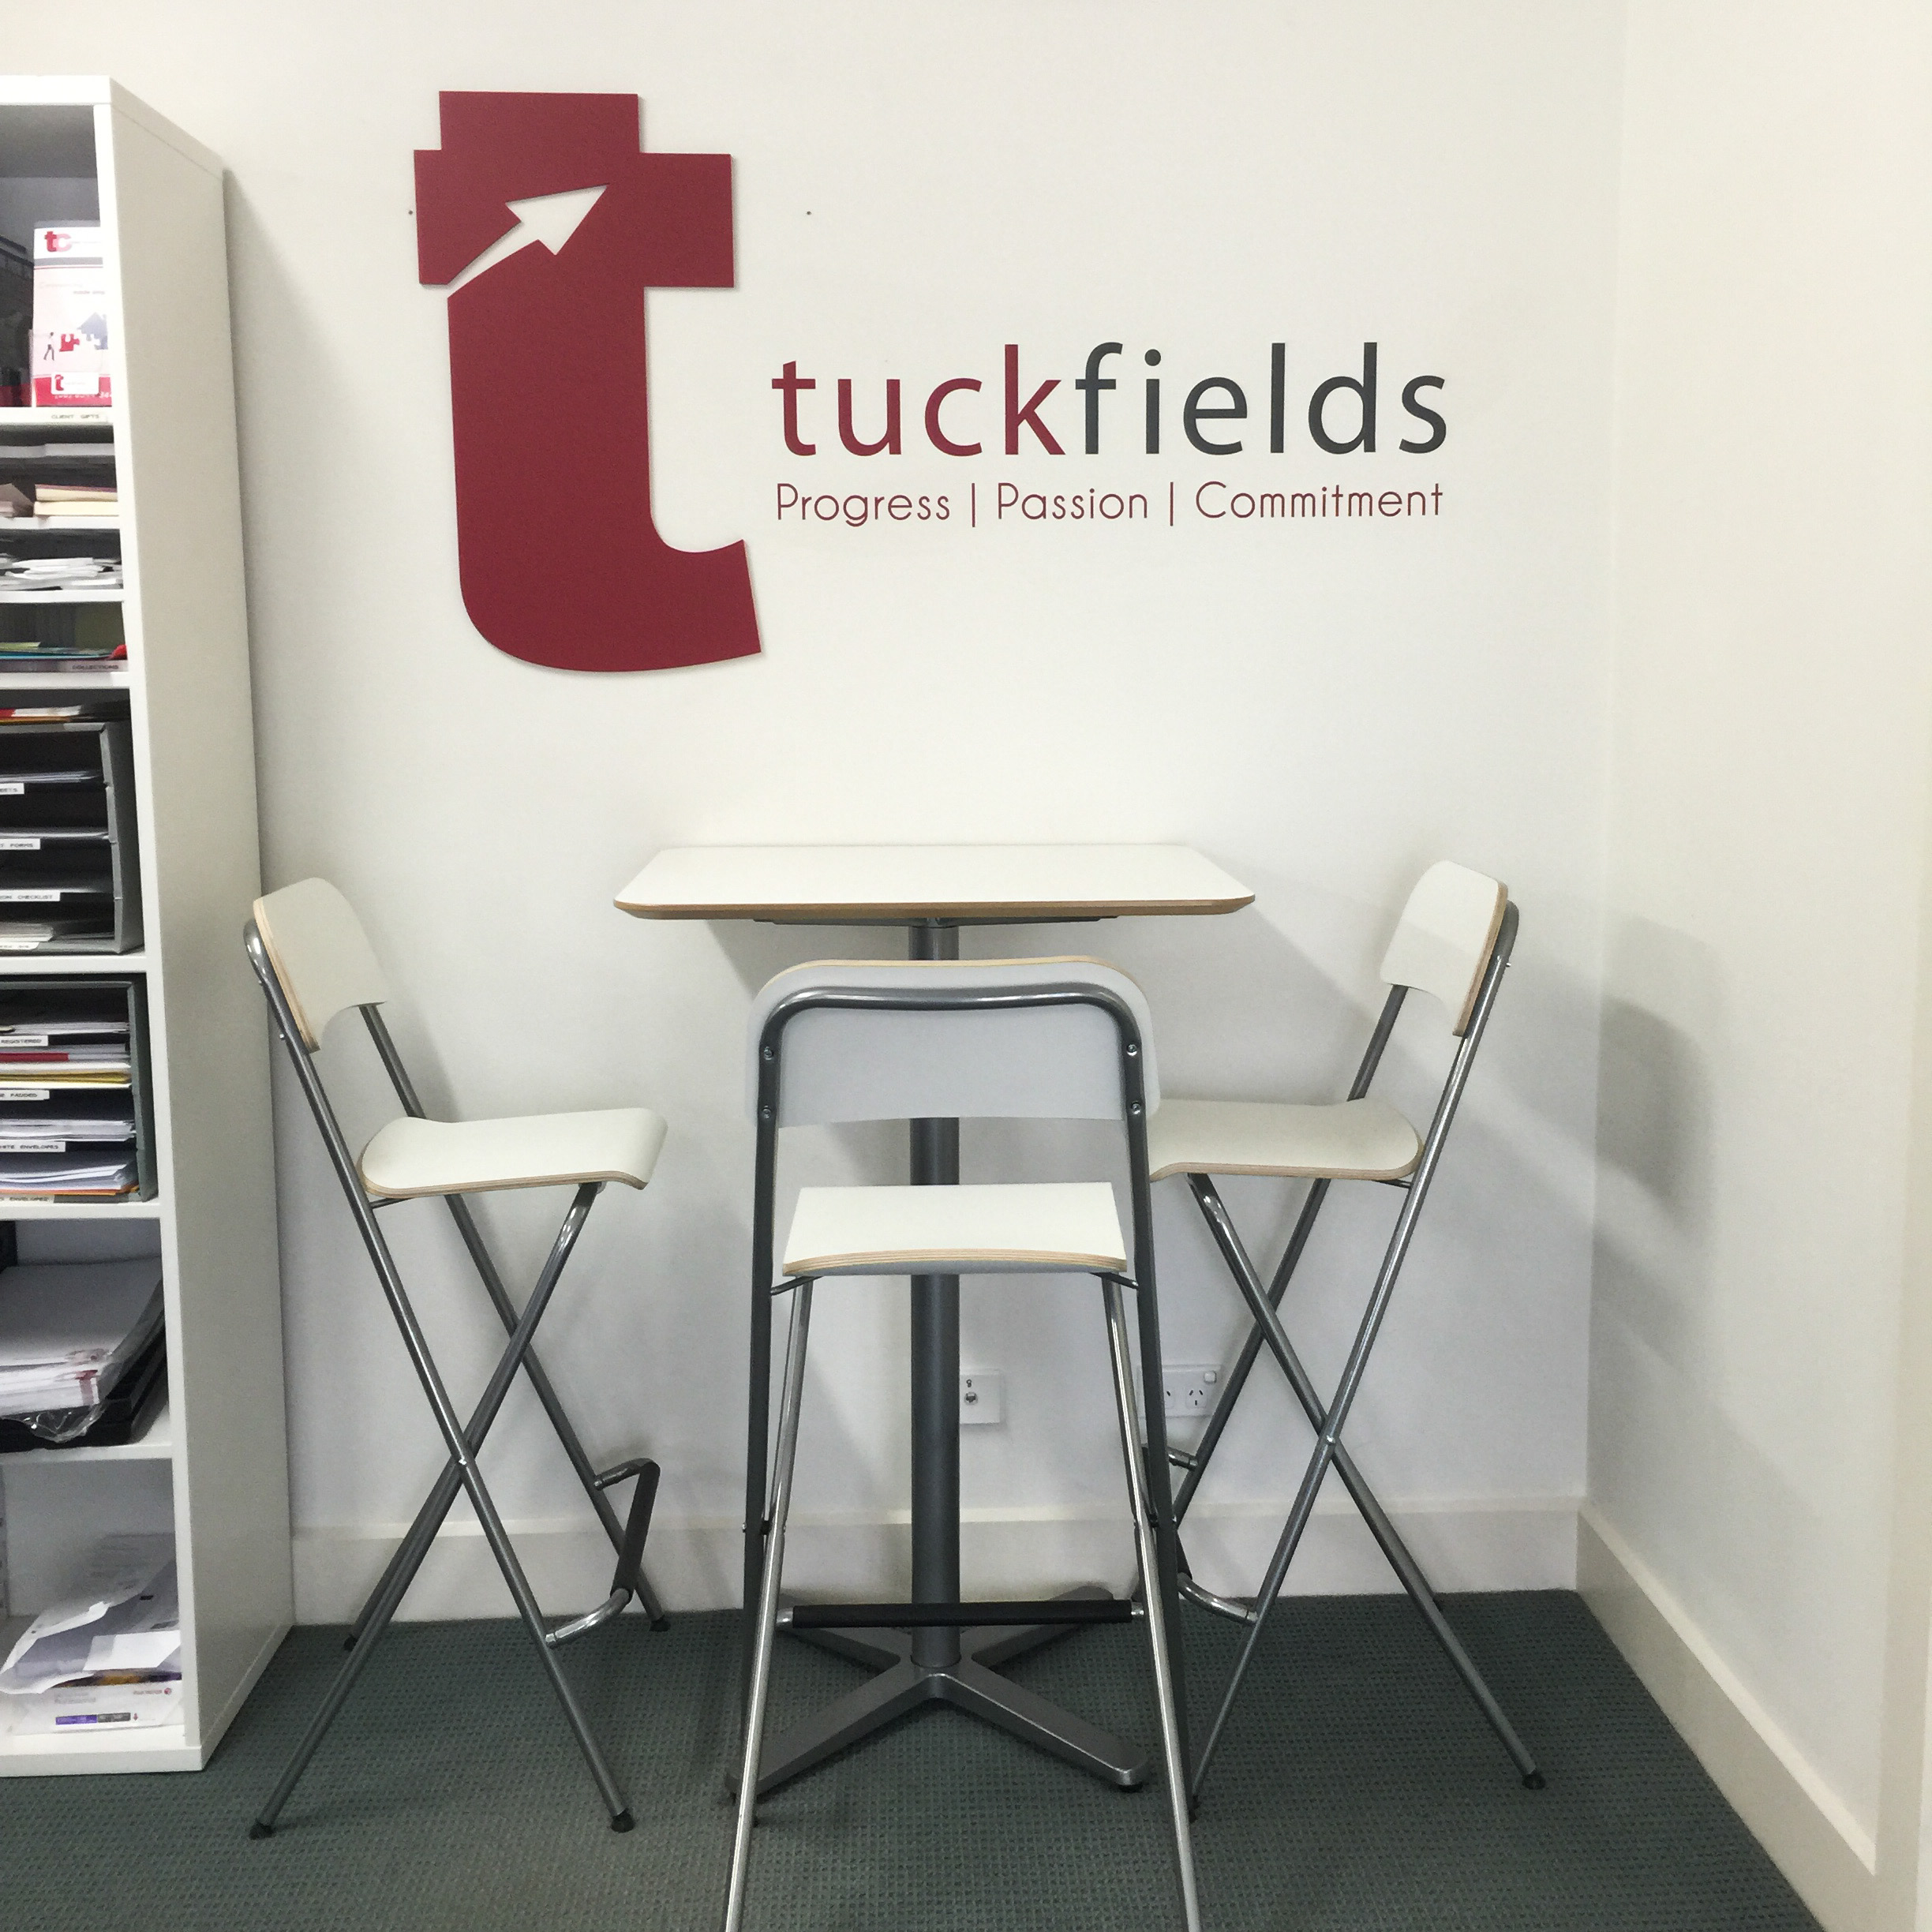 conveyancing office signage 3D logo and vinyl lettering